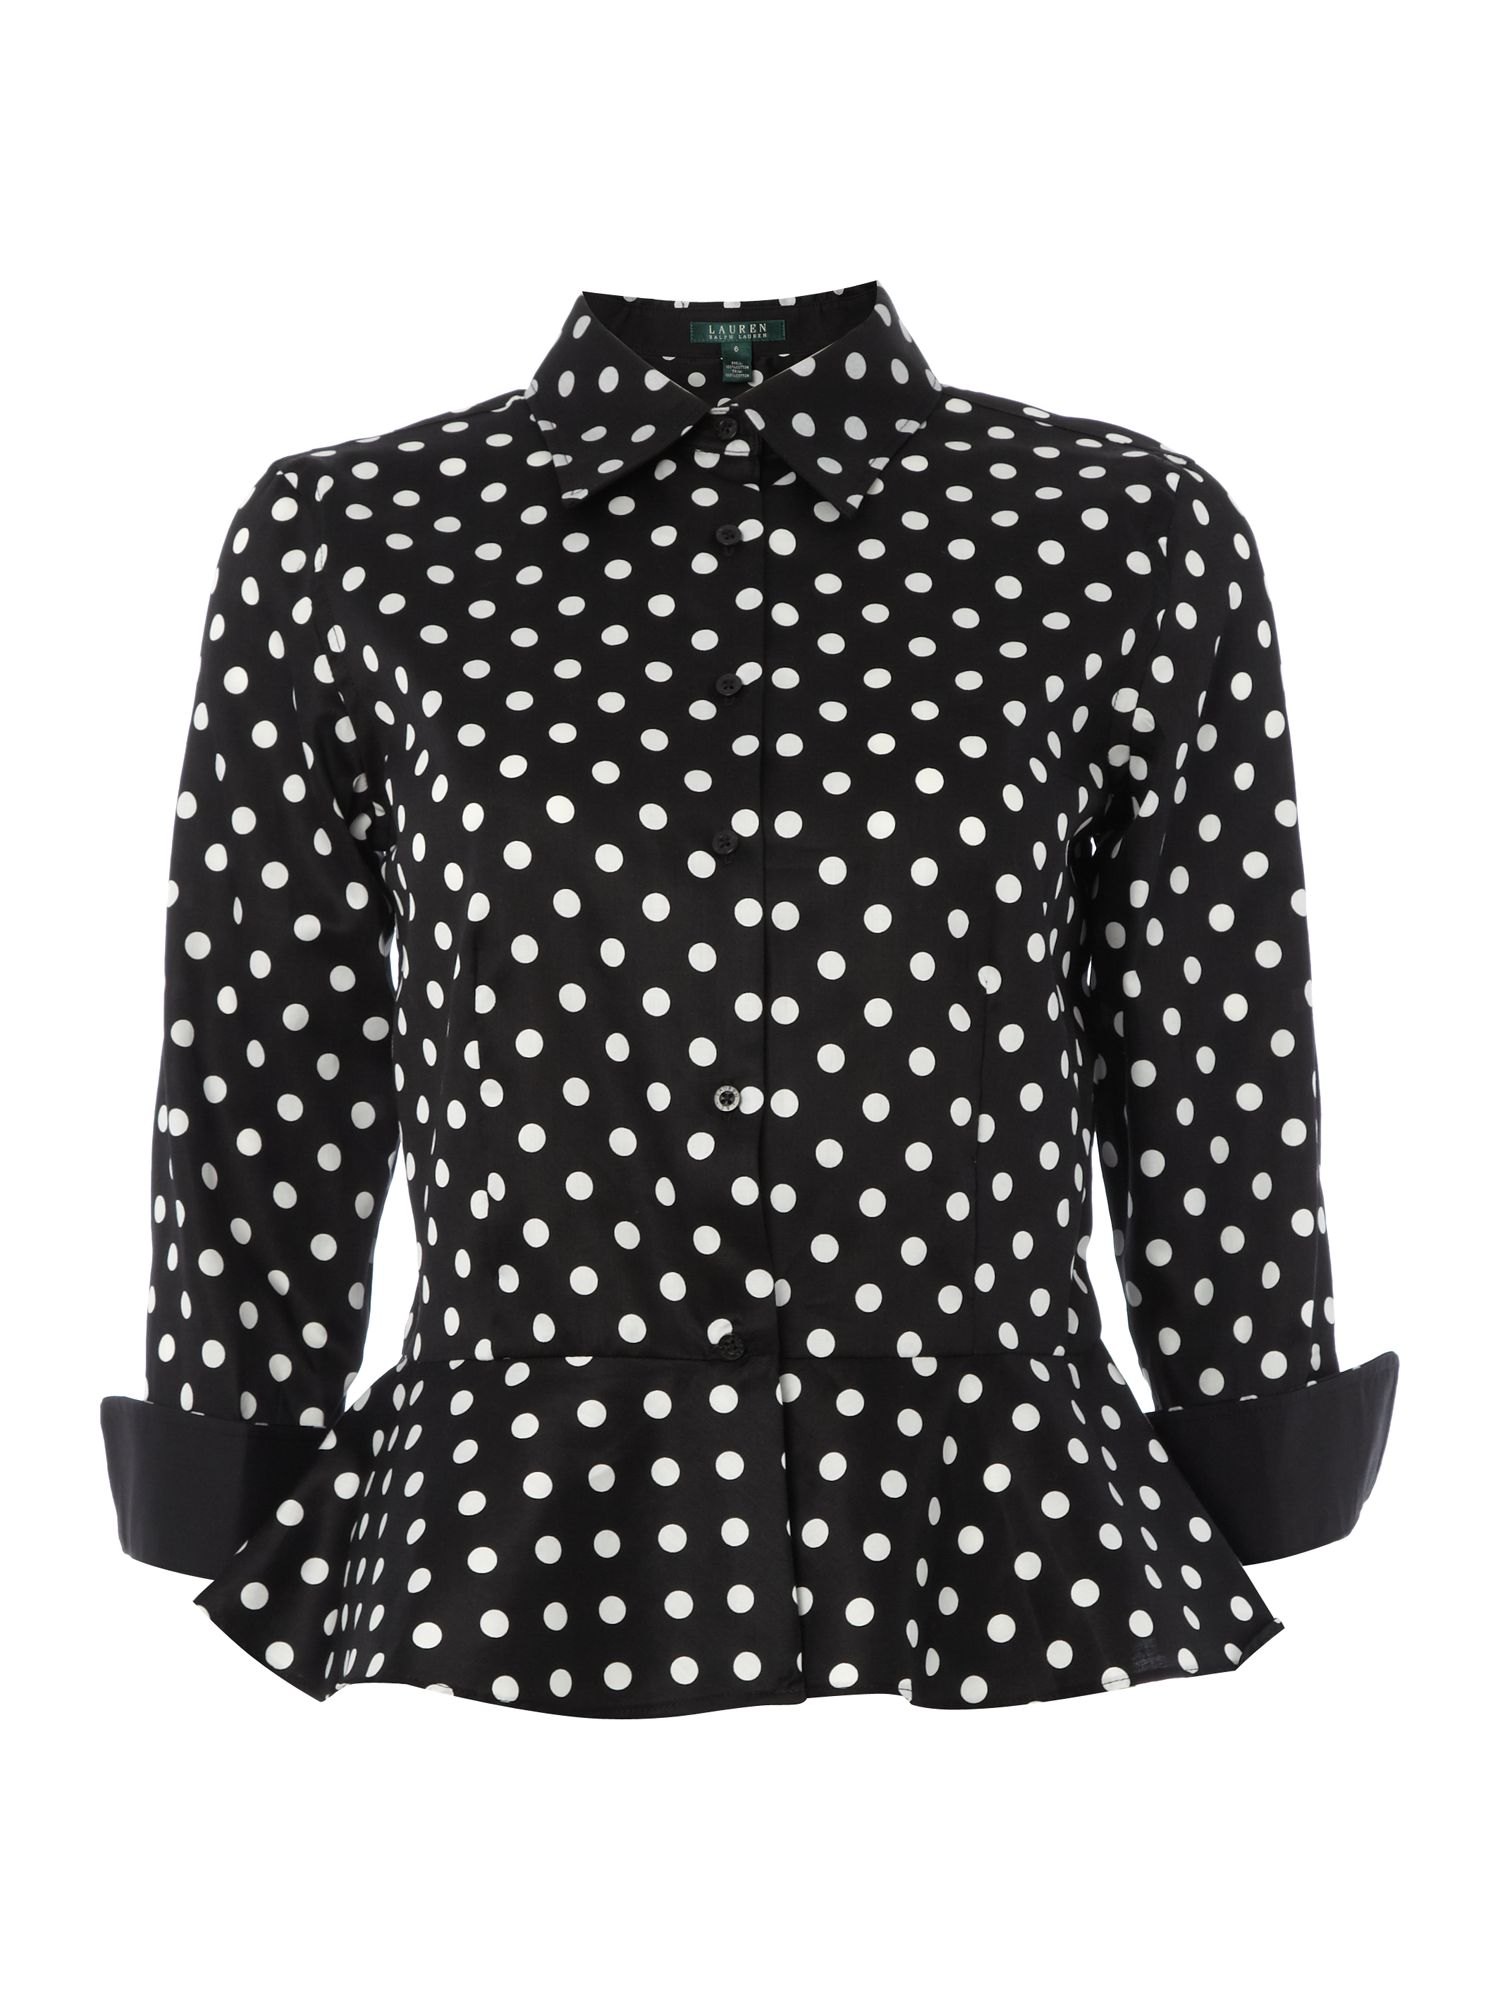 3/4 sleeved peplum top